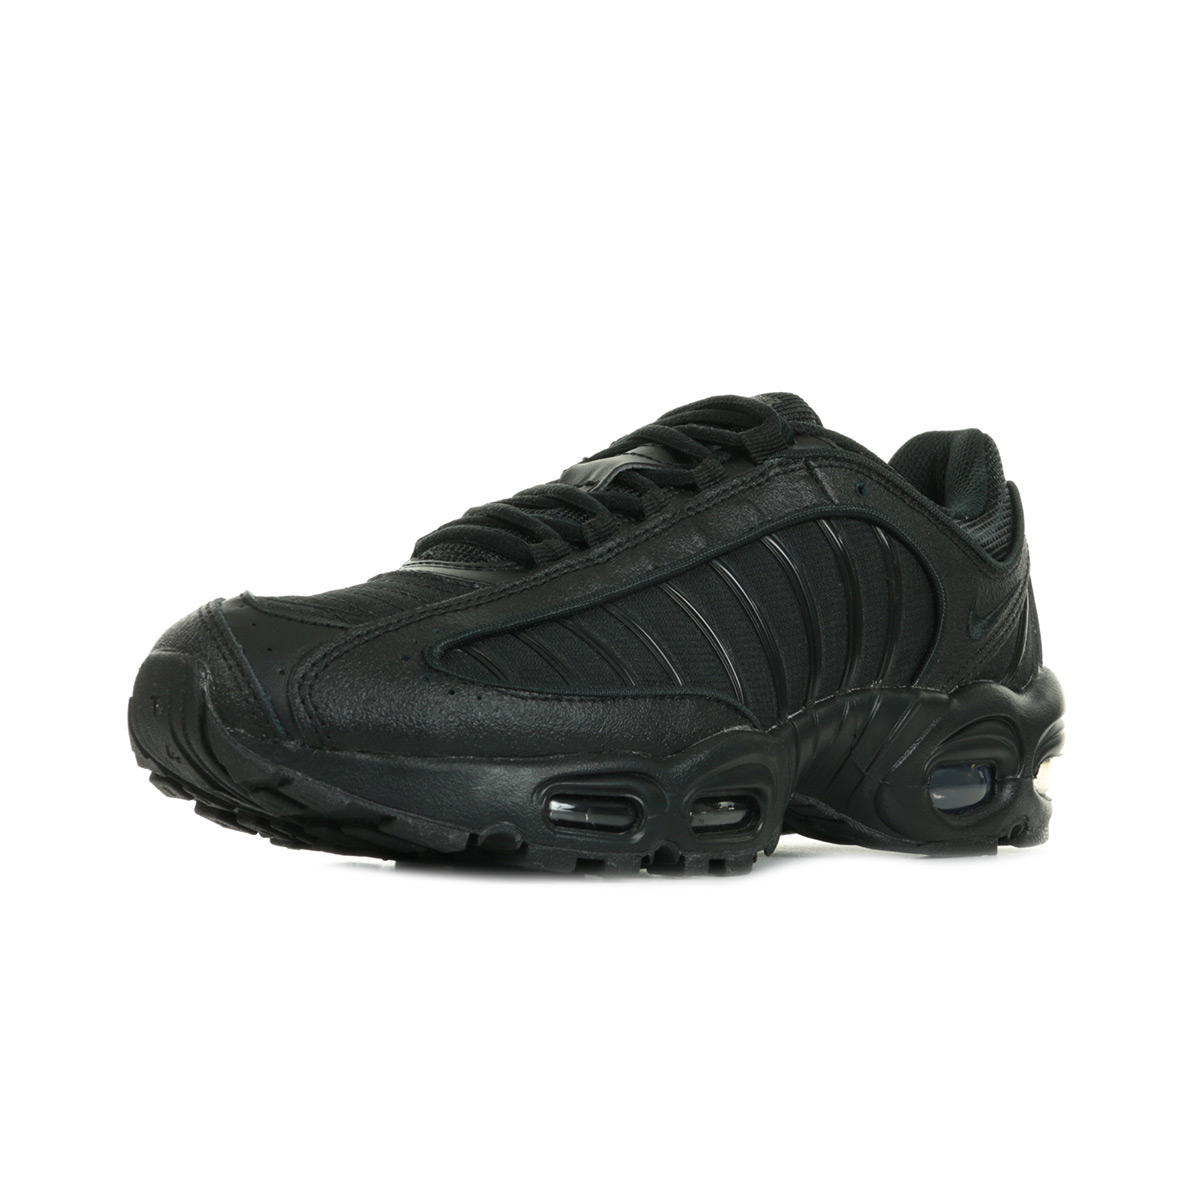 Nike Air Max Tailwind IV AQ2567005, Baskets mode homme